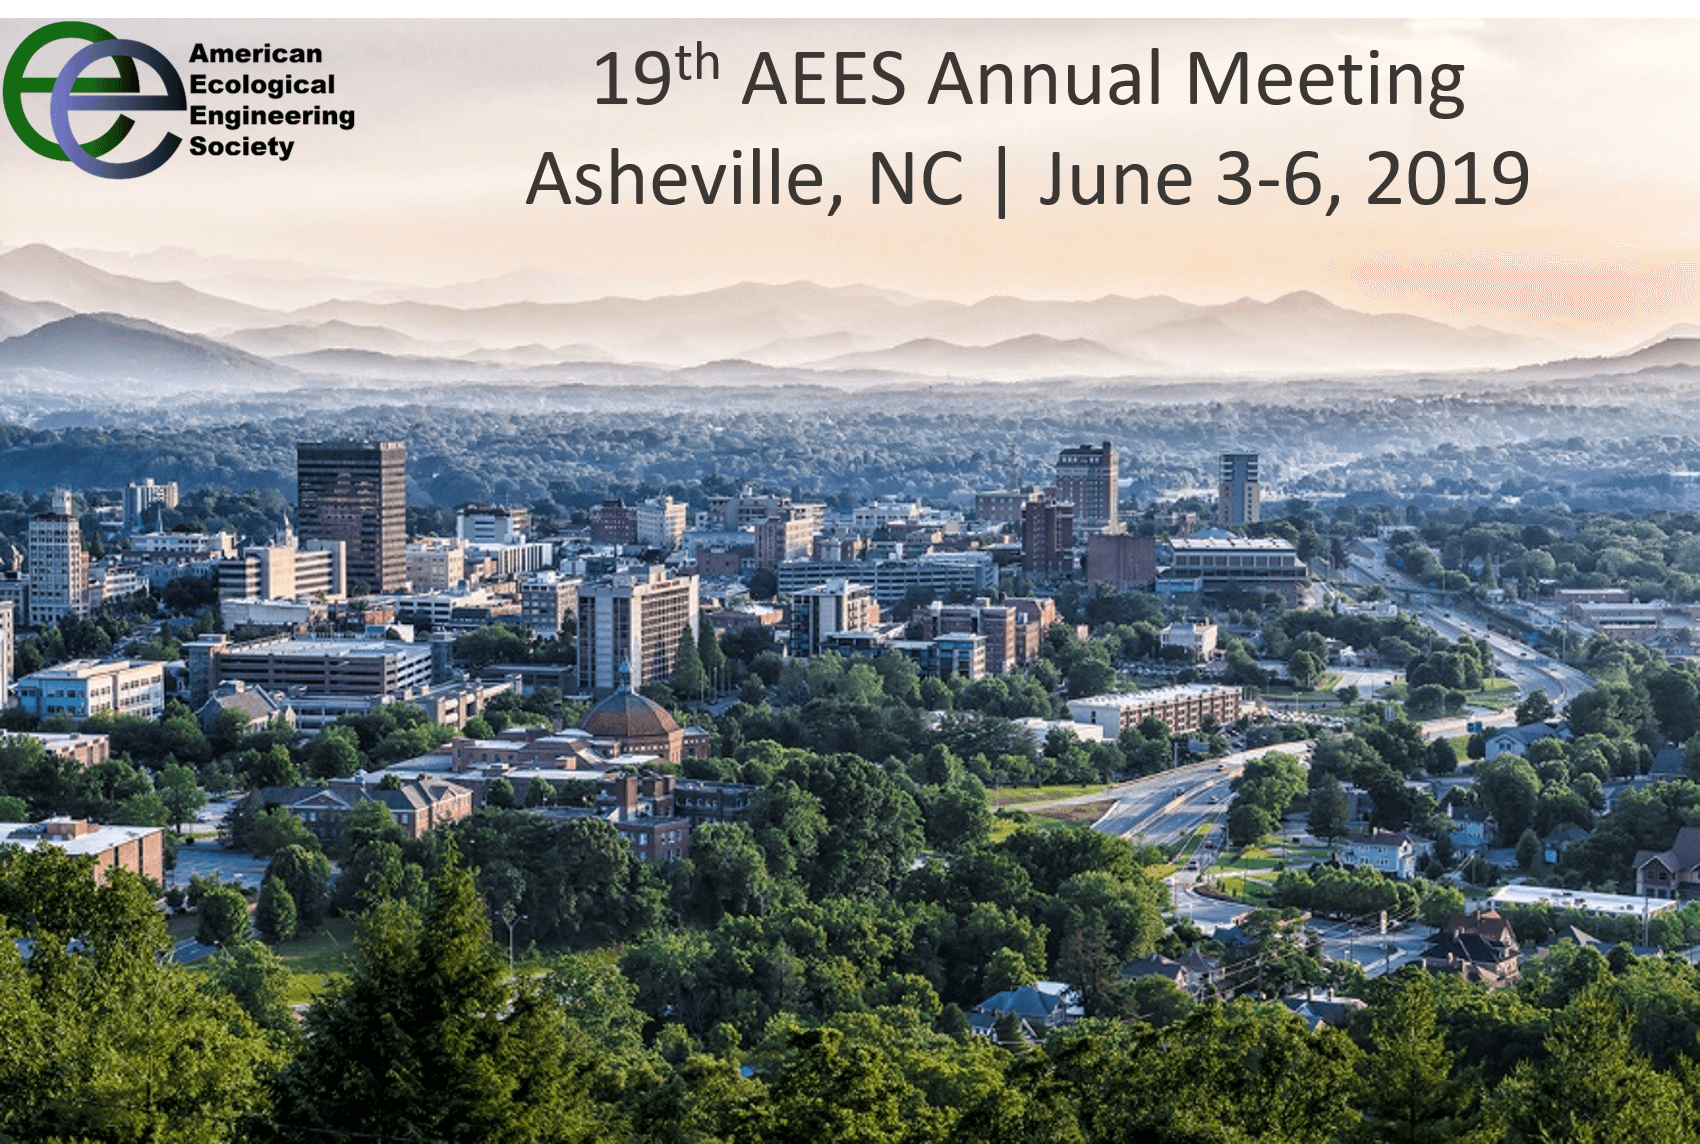 19th Annual AEES Meeting